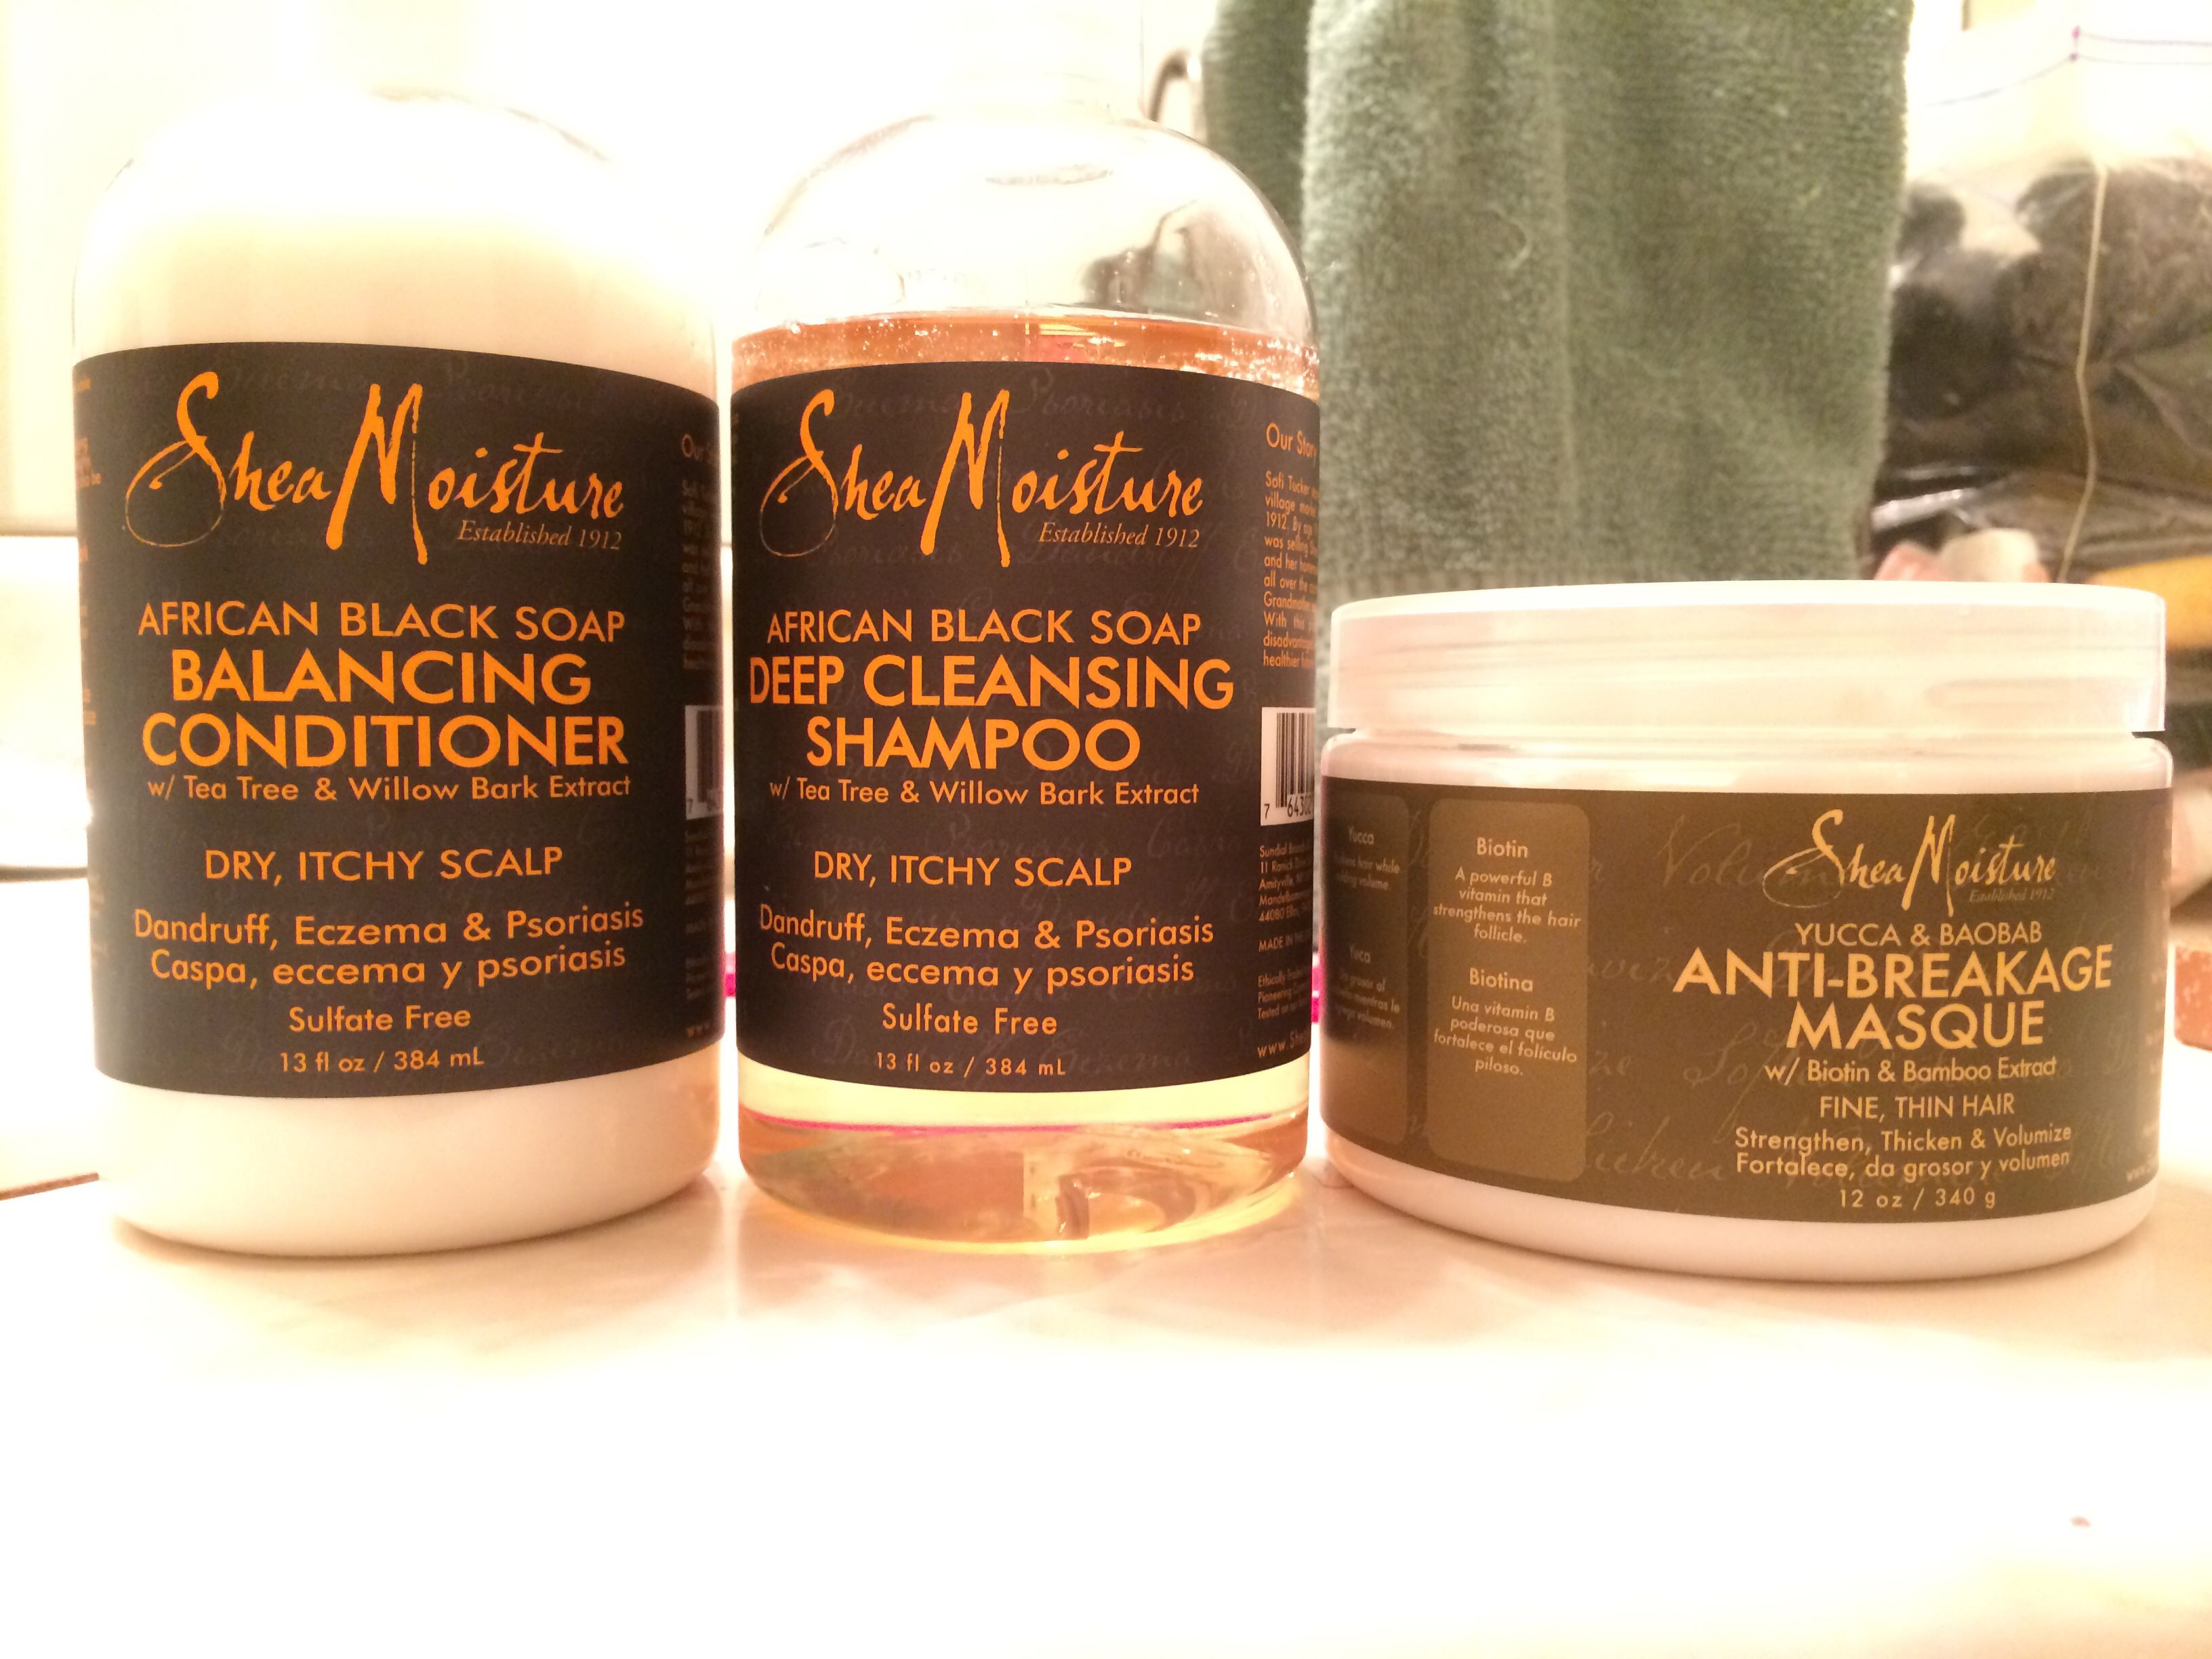 If You Are Suffering From Dry Itchy Scalp The Shea Moisture